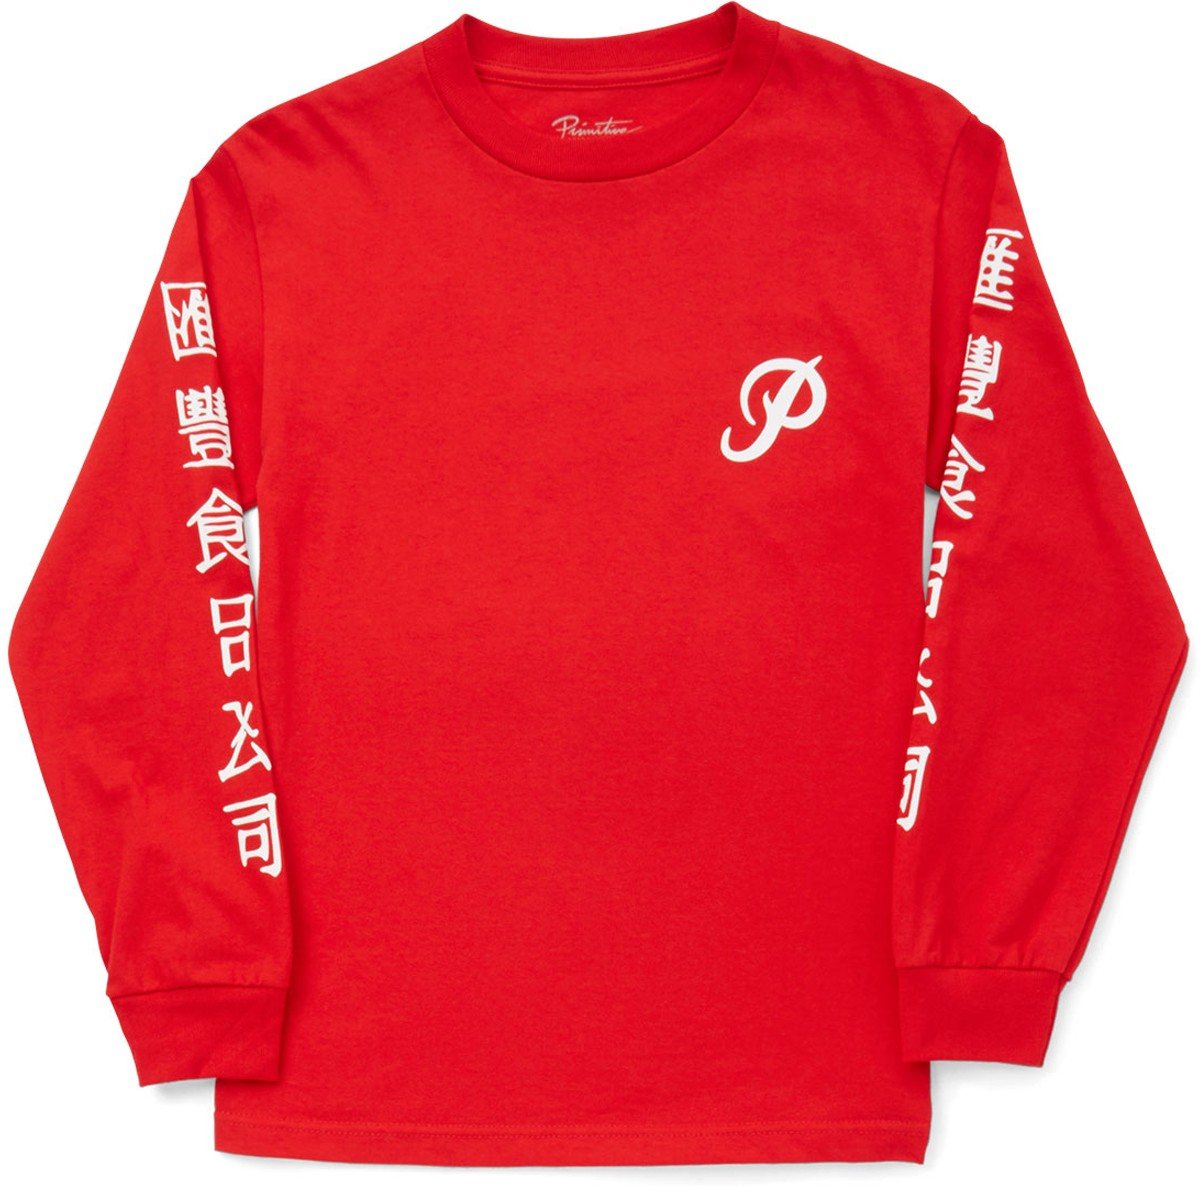 Primitive x Huy Fong Foods Long Sleeve T-Shirt - Red 16fb2f0a840c